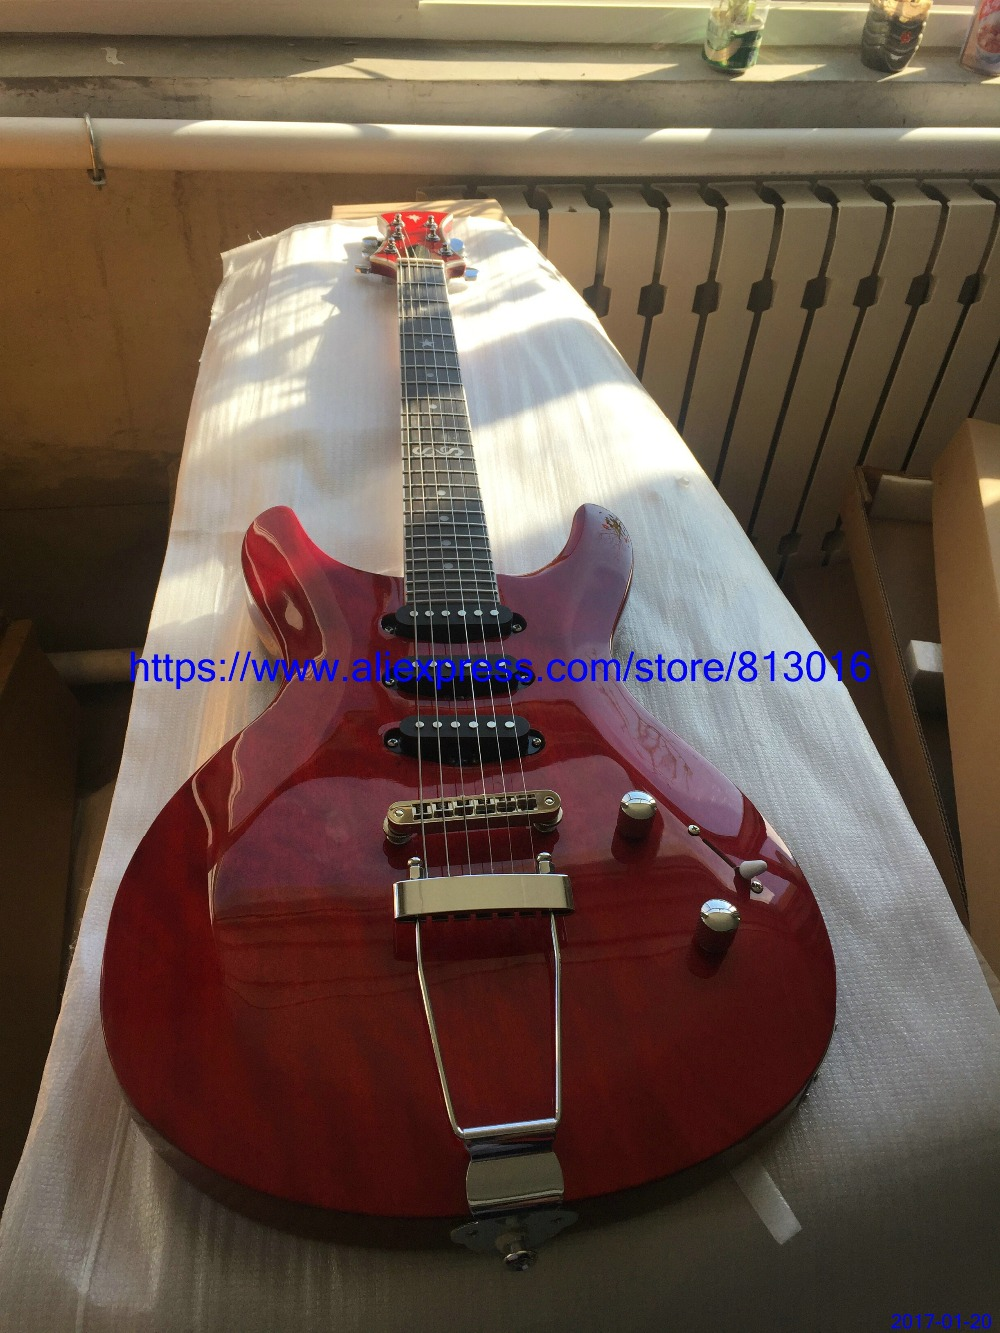 New Arrival Hot selling electric guitar,red see thru,customised fingerboard inlay and headstock shape.chrome parts,free Shipping купить